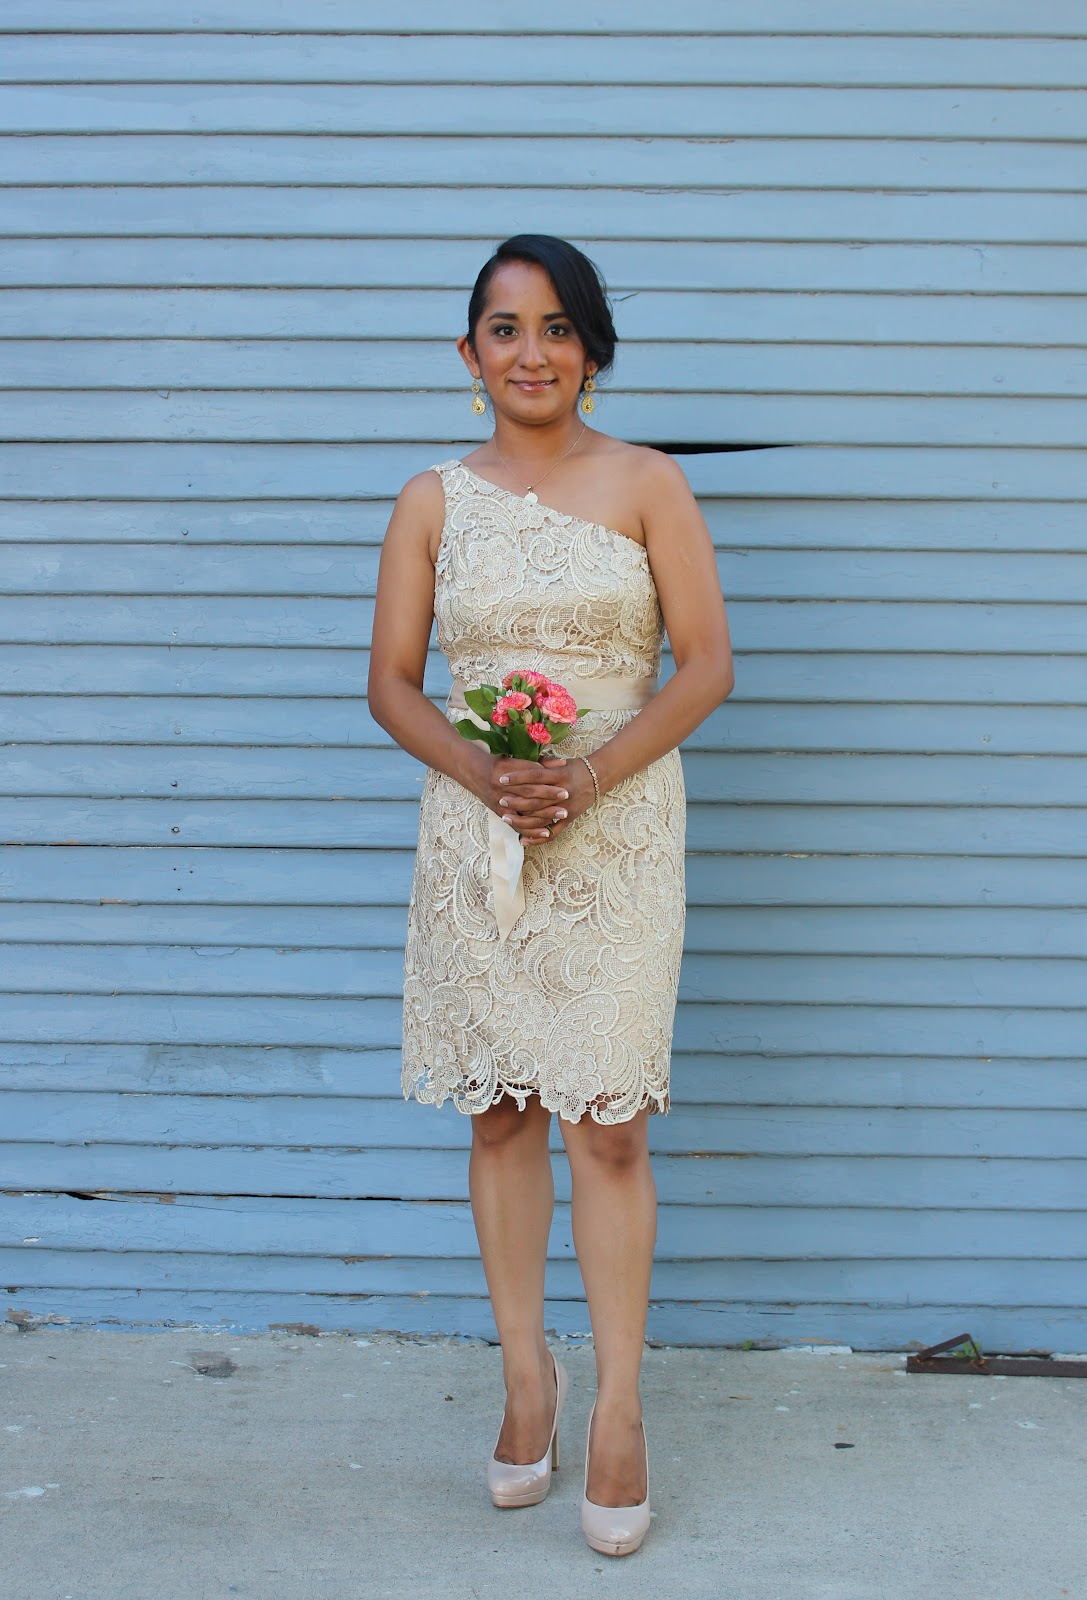 Latina Fashion Diaries: Wedding Lookbook: Outfit Ideas